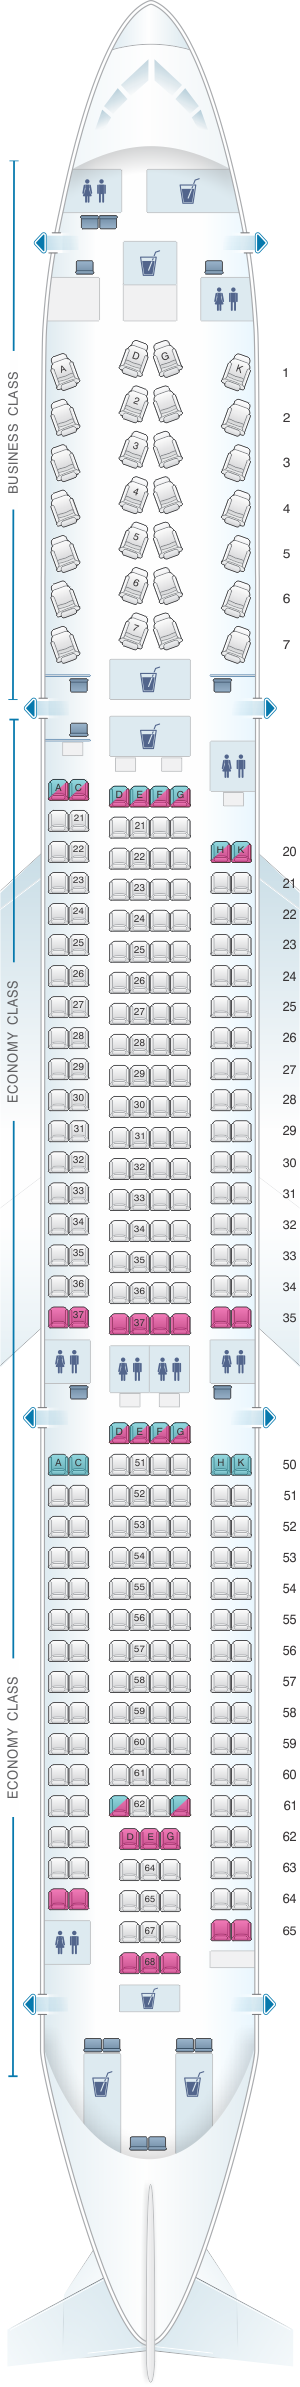 Seat map for SriLankan Airlines Airbus A330-300 Config. 1